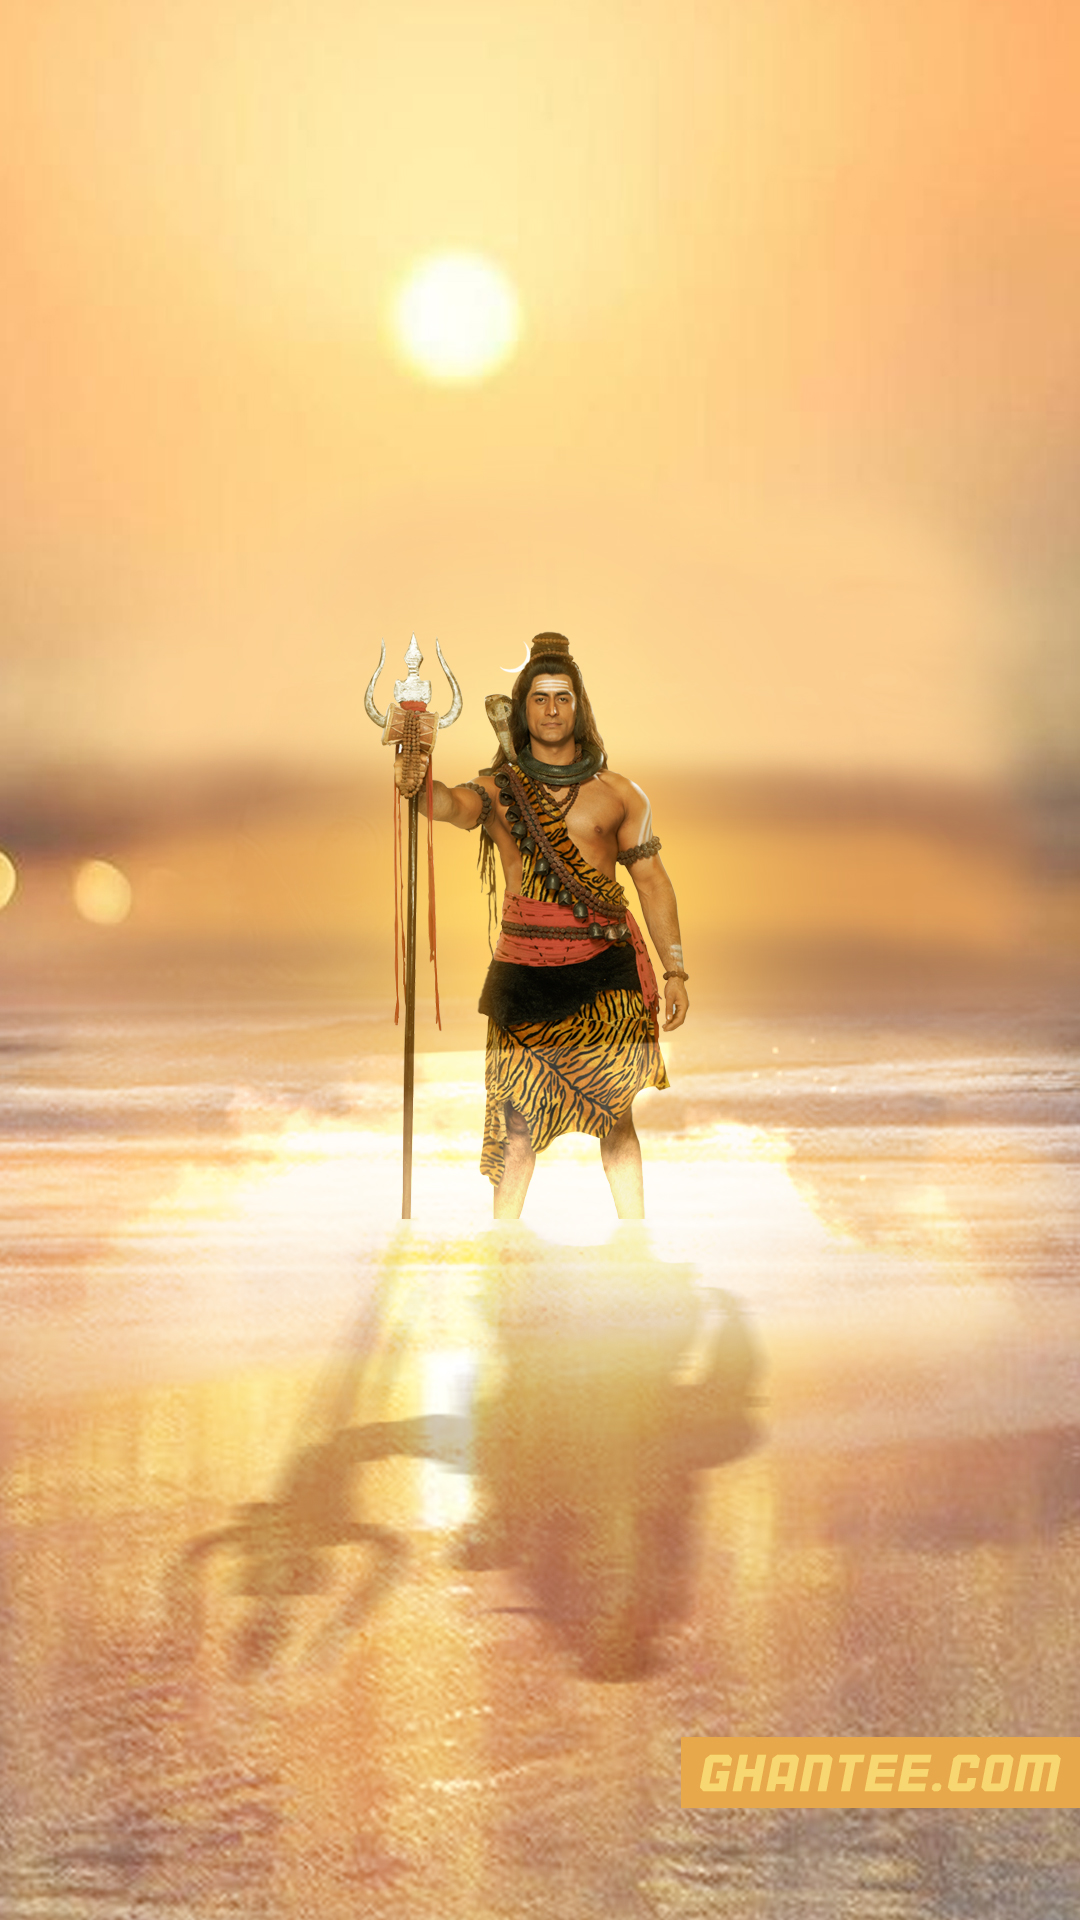 mohit raina mahadev hd phone wallpaper | 1080×1920